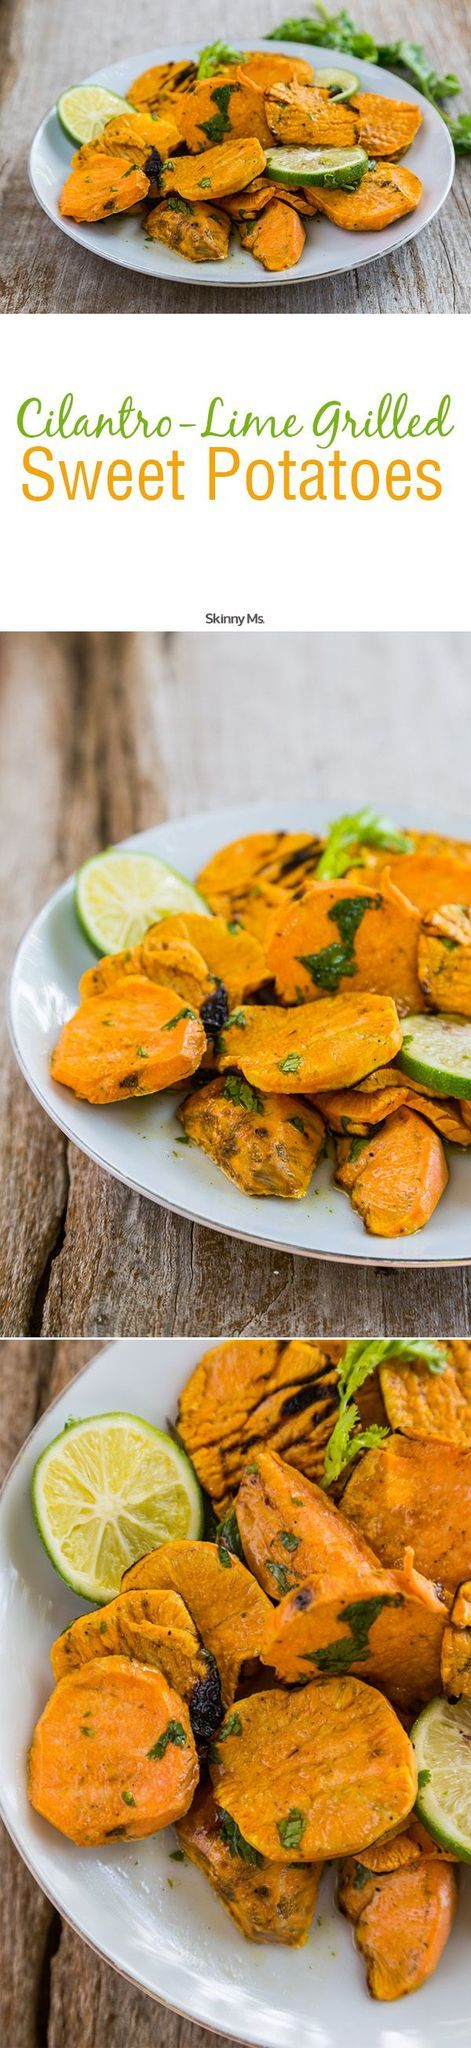 ... ! These Cilantro-Lime Grilled Sweet Potatoes are amazing. #SkinnyMs